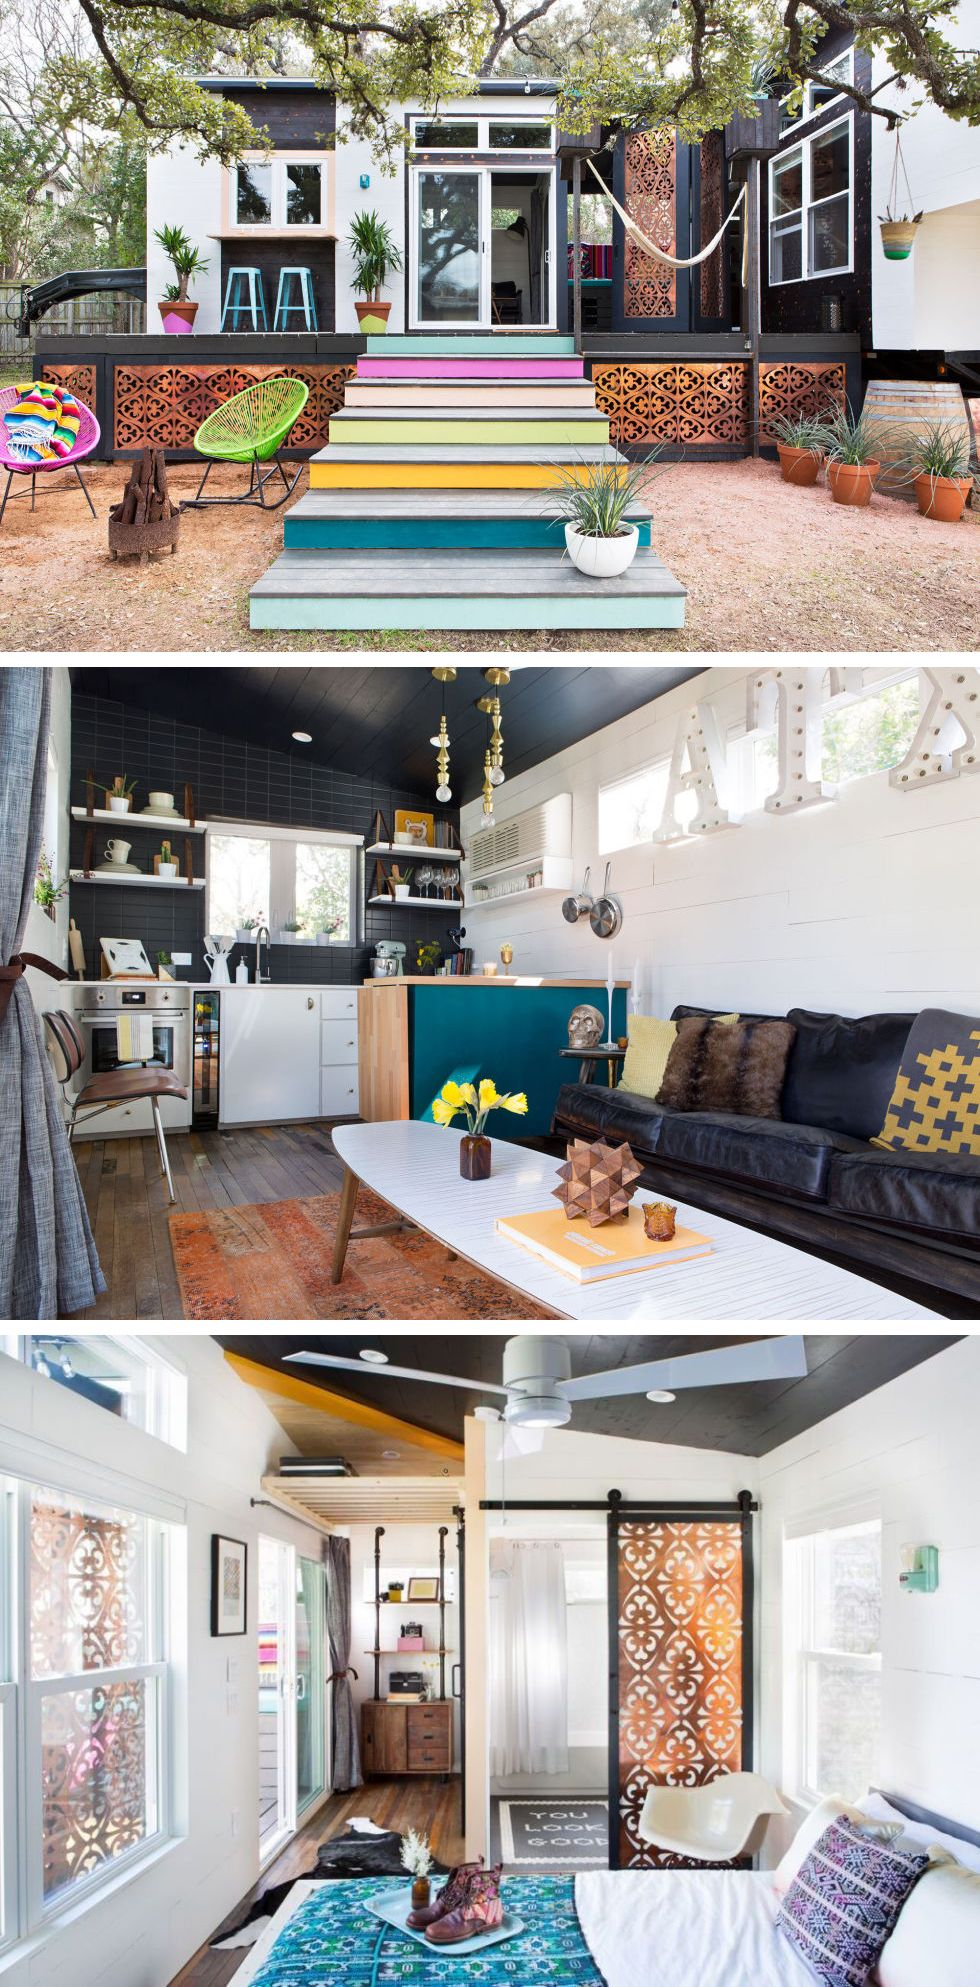 Take A Peek Inside Austins Most Colorful SquareFoot Home - Couple takes tiny house big adventure